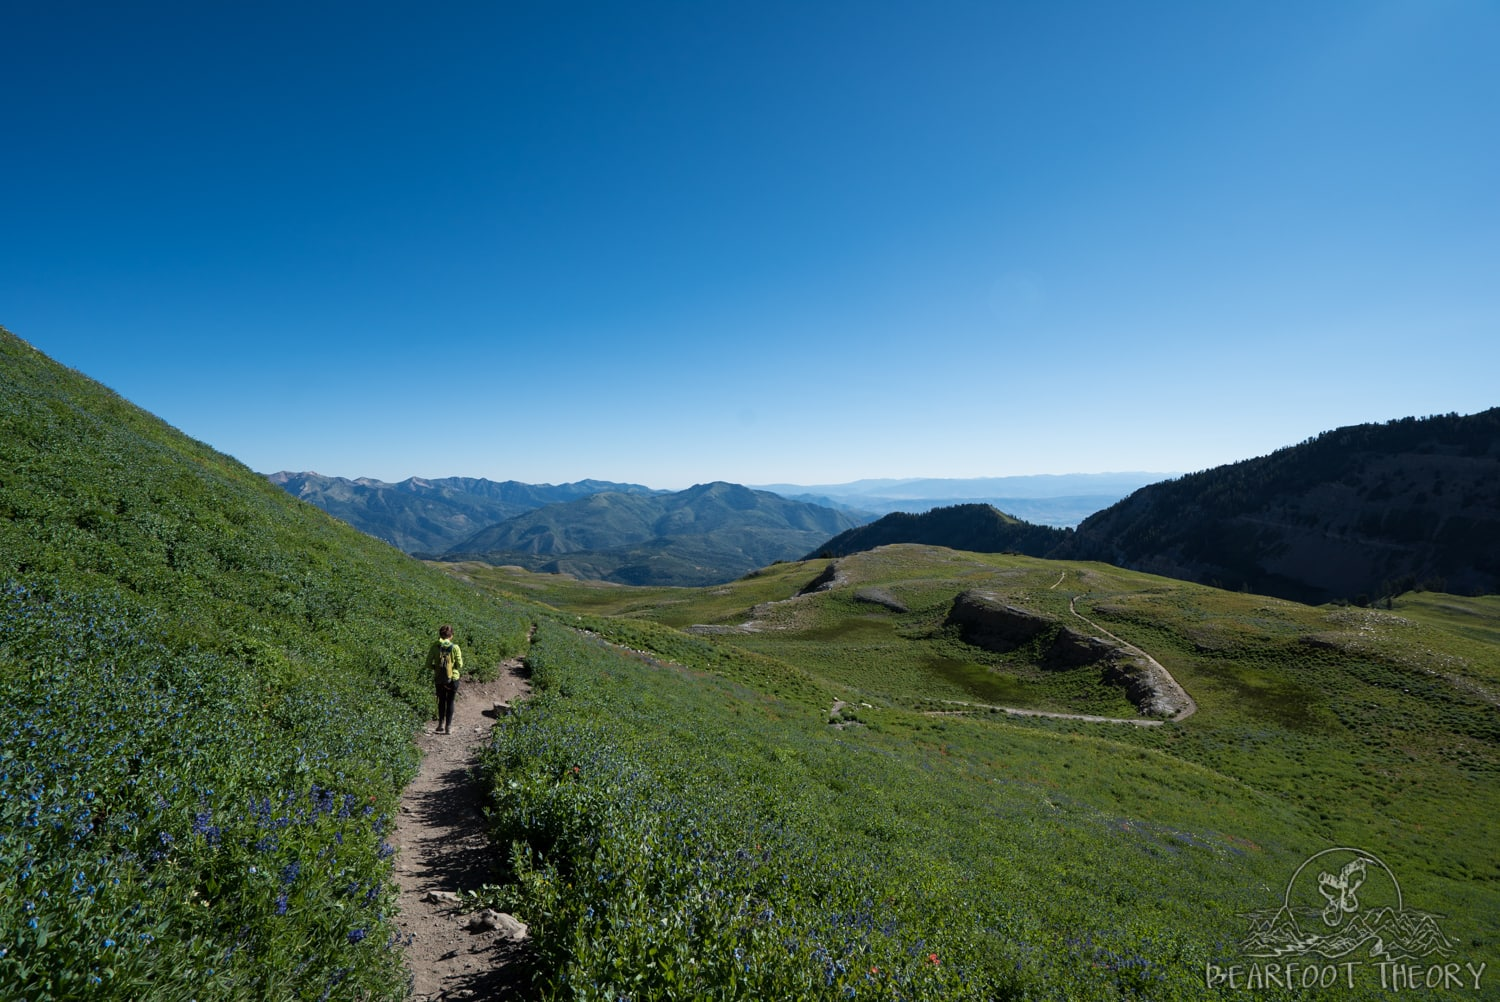 The Timpooneke Trail coming down from the summit of Mount Timpanogos